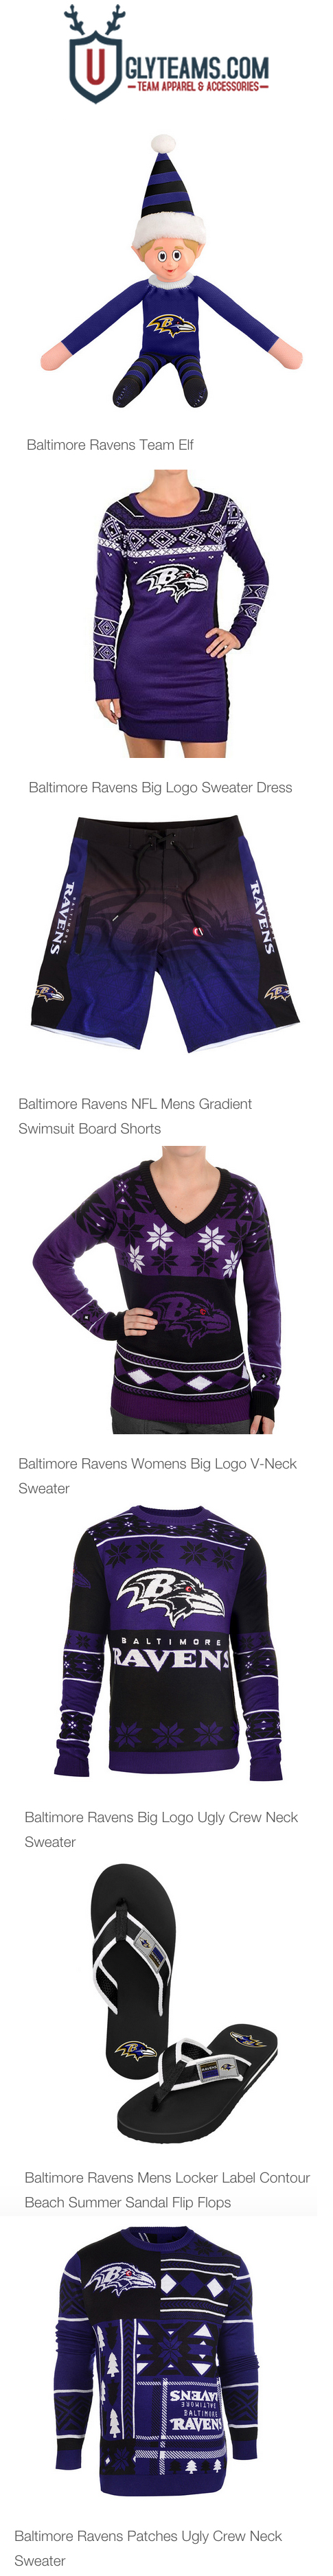 Baltimore Ravens Ultimate Fan Gift Guide from Uglyteams.com | NFL ...